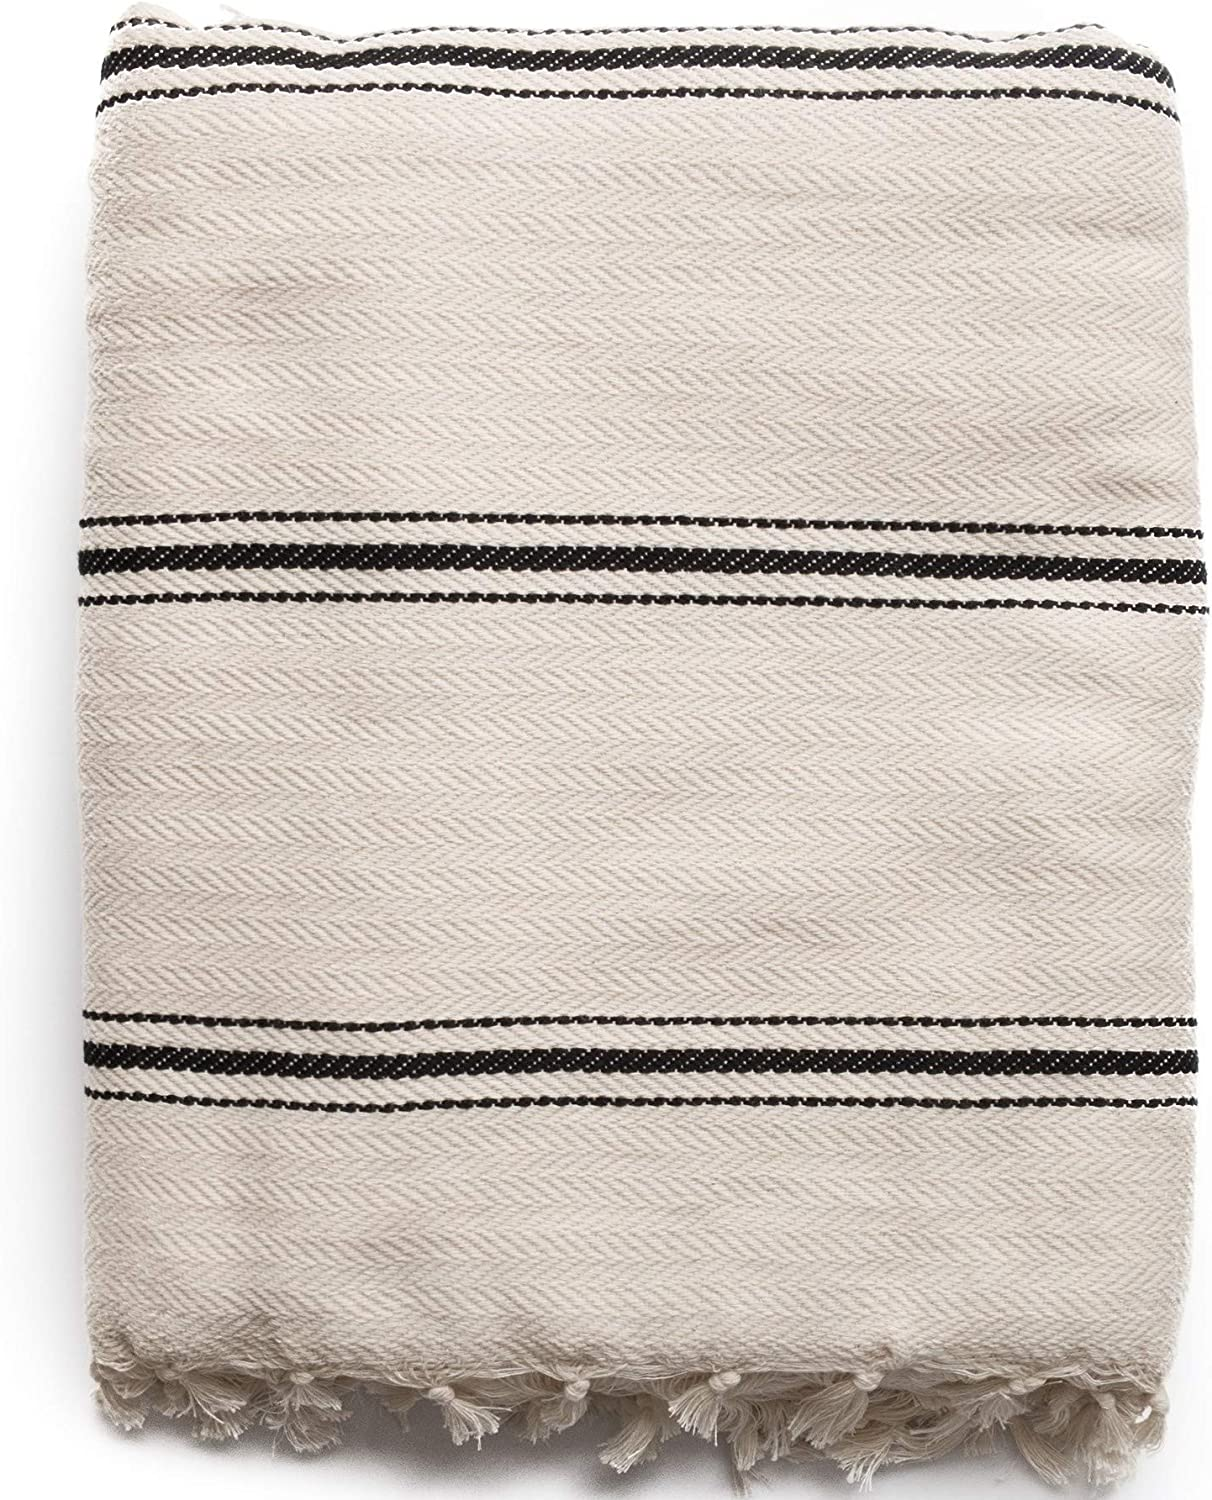 The Loomia Turkish Cotton Blanket - Sophie Boho Series (100% Turkish Cotton, 74  X 98  Full-Queen Size, Cream-Beige Black)